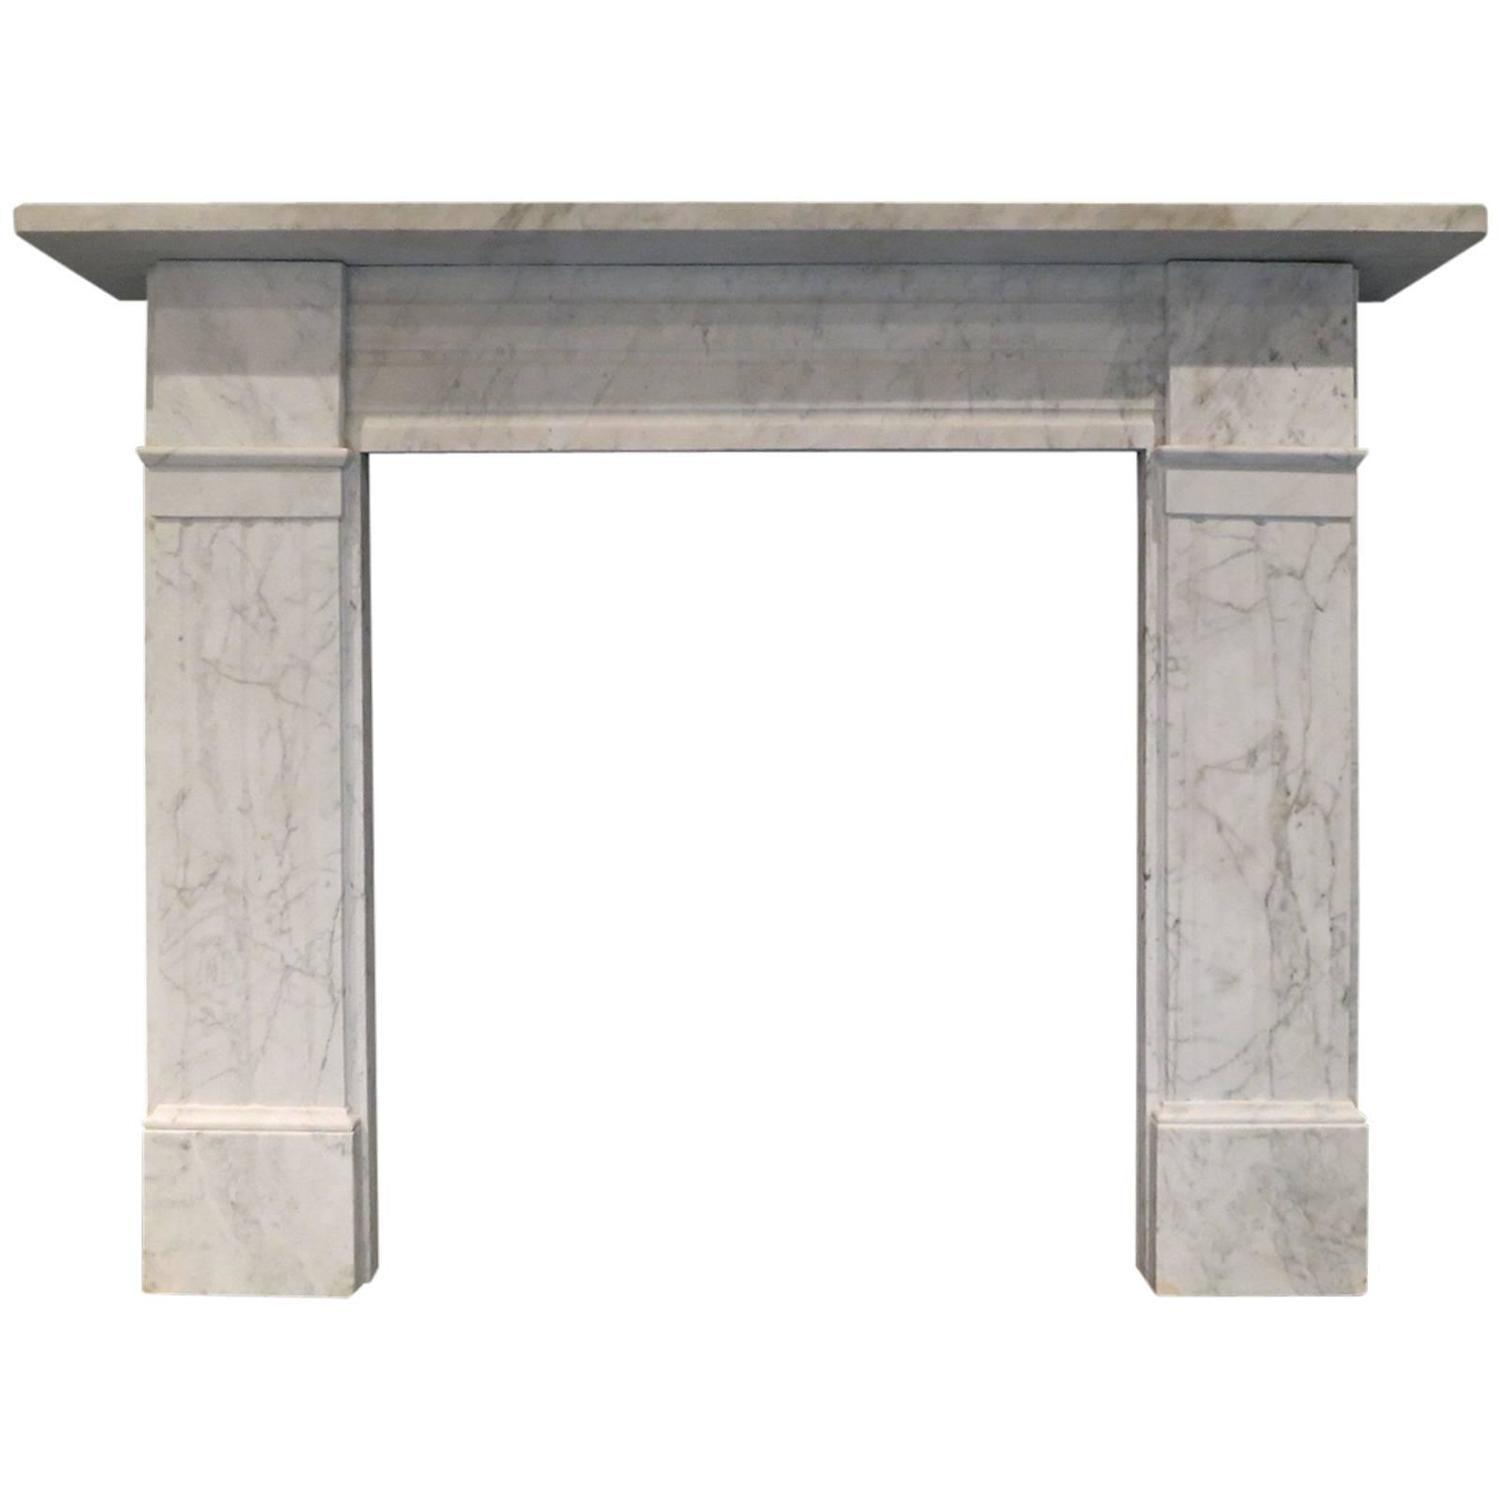 Antique victorian marble fireplace mantel for sale at 1stdibs for Marble mantels for sale